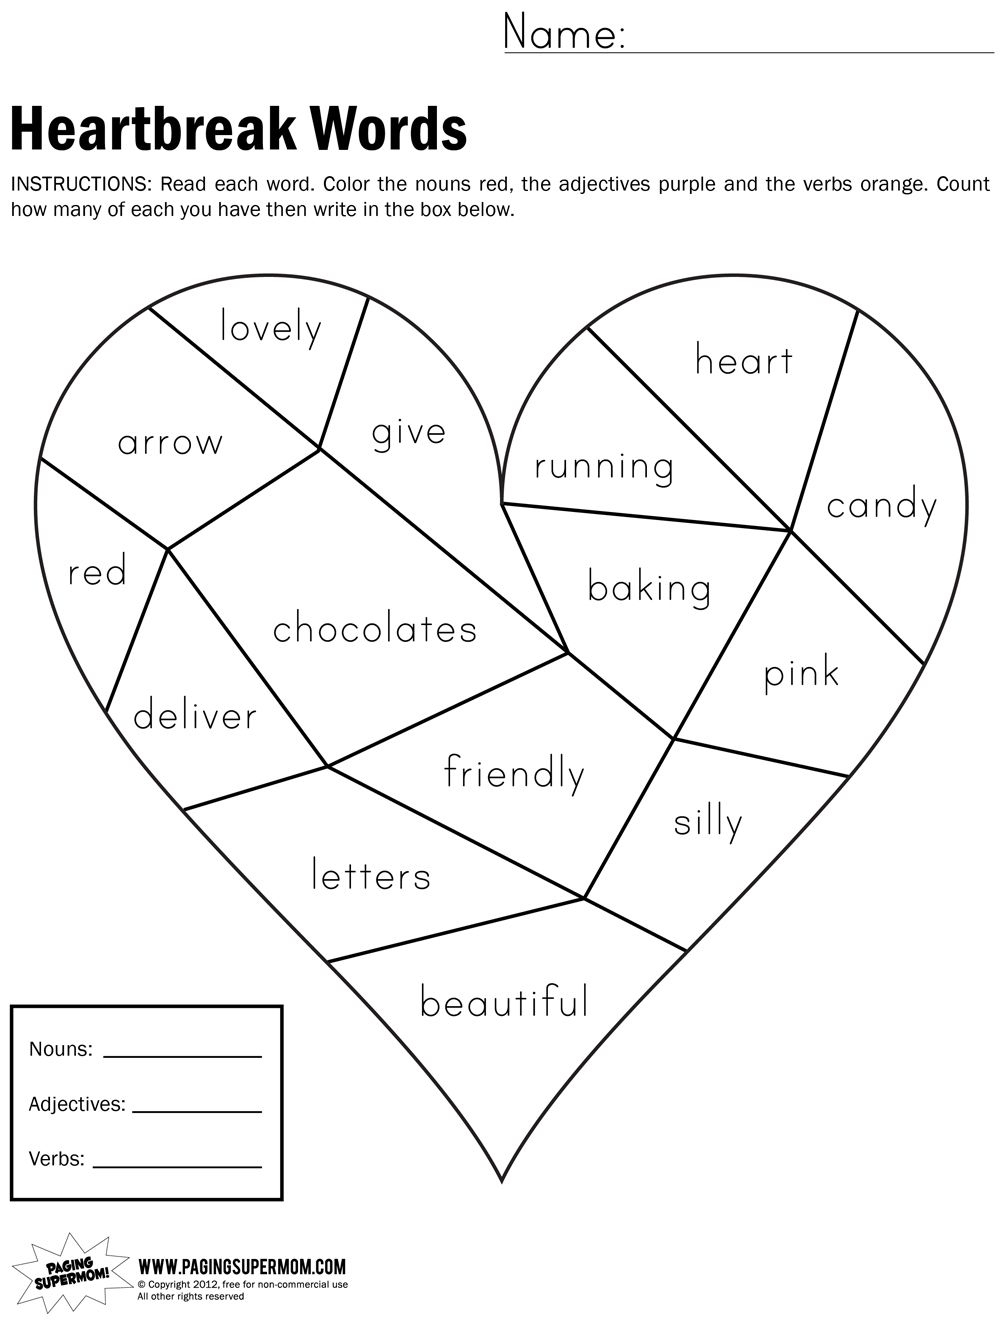 Heartbreak Words Free Printable Worksheet | Education---February | Free Printable Valentine Math Worksheets